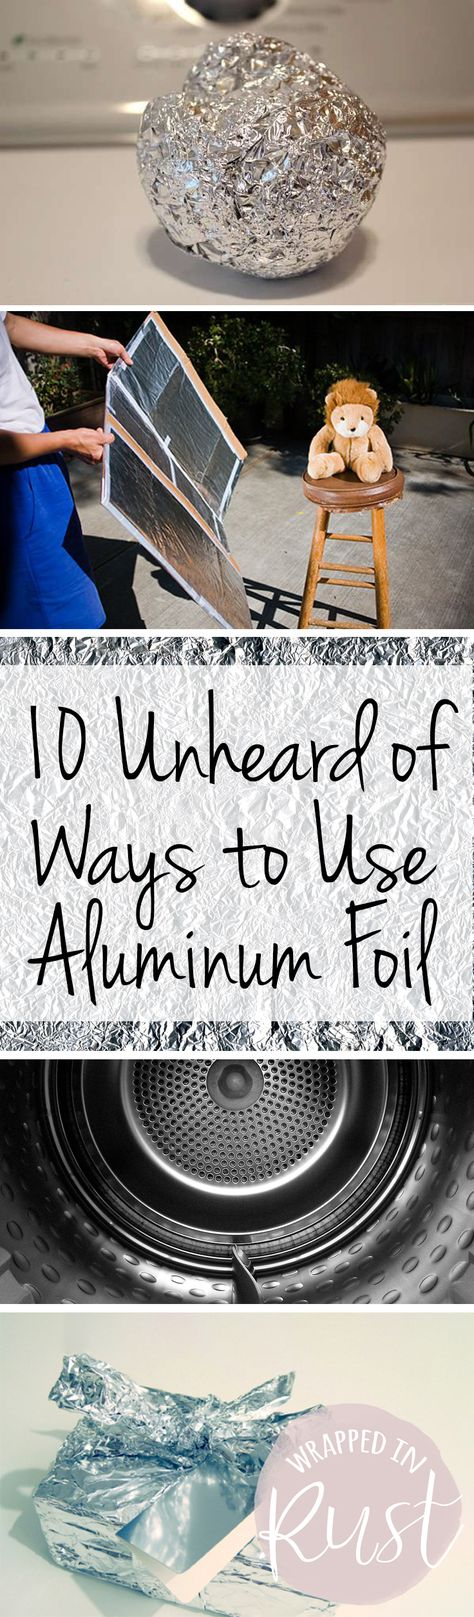 How to Use Aluminum Foil, Uses for Aluminum Foil, Things to Do With Aluminum Foil, Cleaning Tips and Tricks, Aluminum Foil, Life Hacks, Cleaning Hacks, Easy Cleaning Tips and Tricks, Popular Pin.